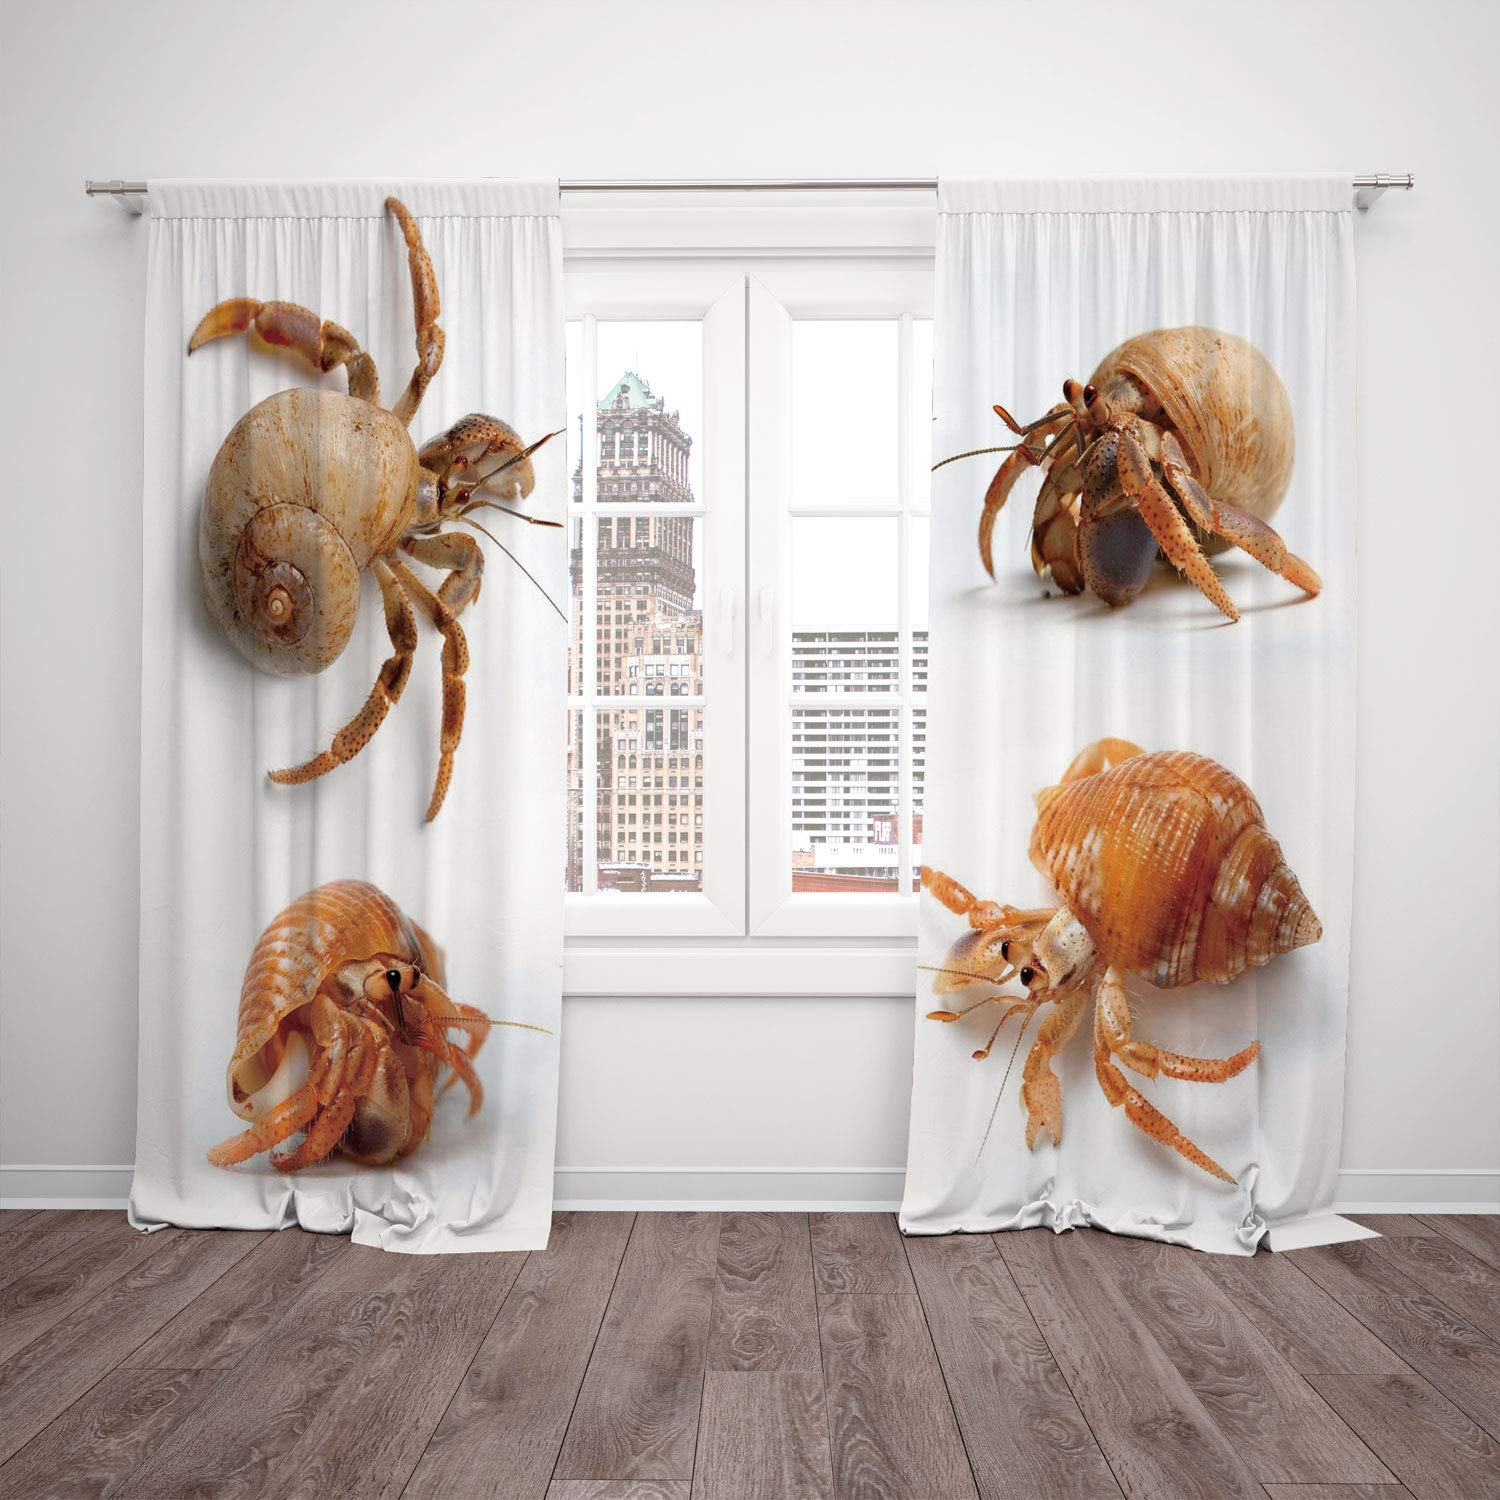 Thermal Insulated Blackout Window Curtain Crabs Decor Sea Animals Theme Set Of Hermit Crabs From Caribbean Sea Digital Print Marigold And White Living Room Bedroom Kitchen Cafe Window Drapes 2 Panel S Amazon In Home Kitchen